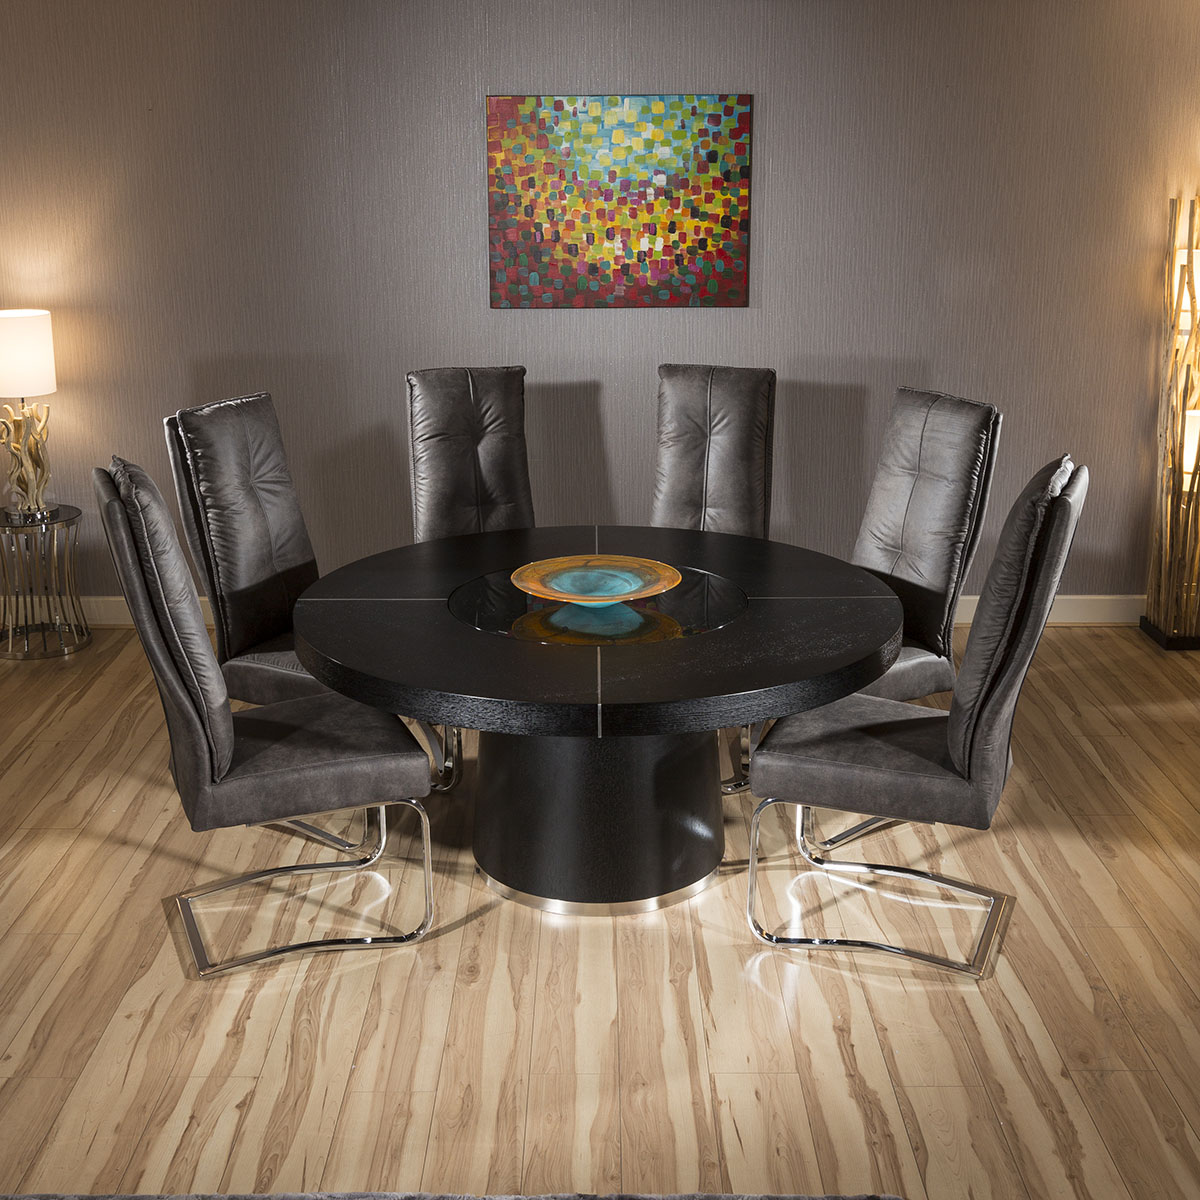 Round Comfy Chair Large Round Black Oak Dining Table 43 6 Extra Large Comfy